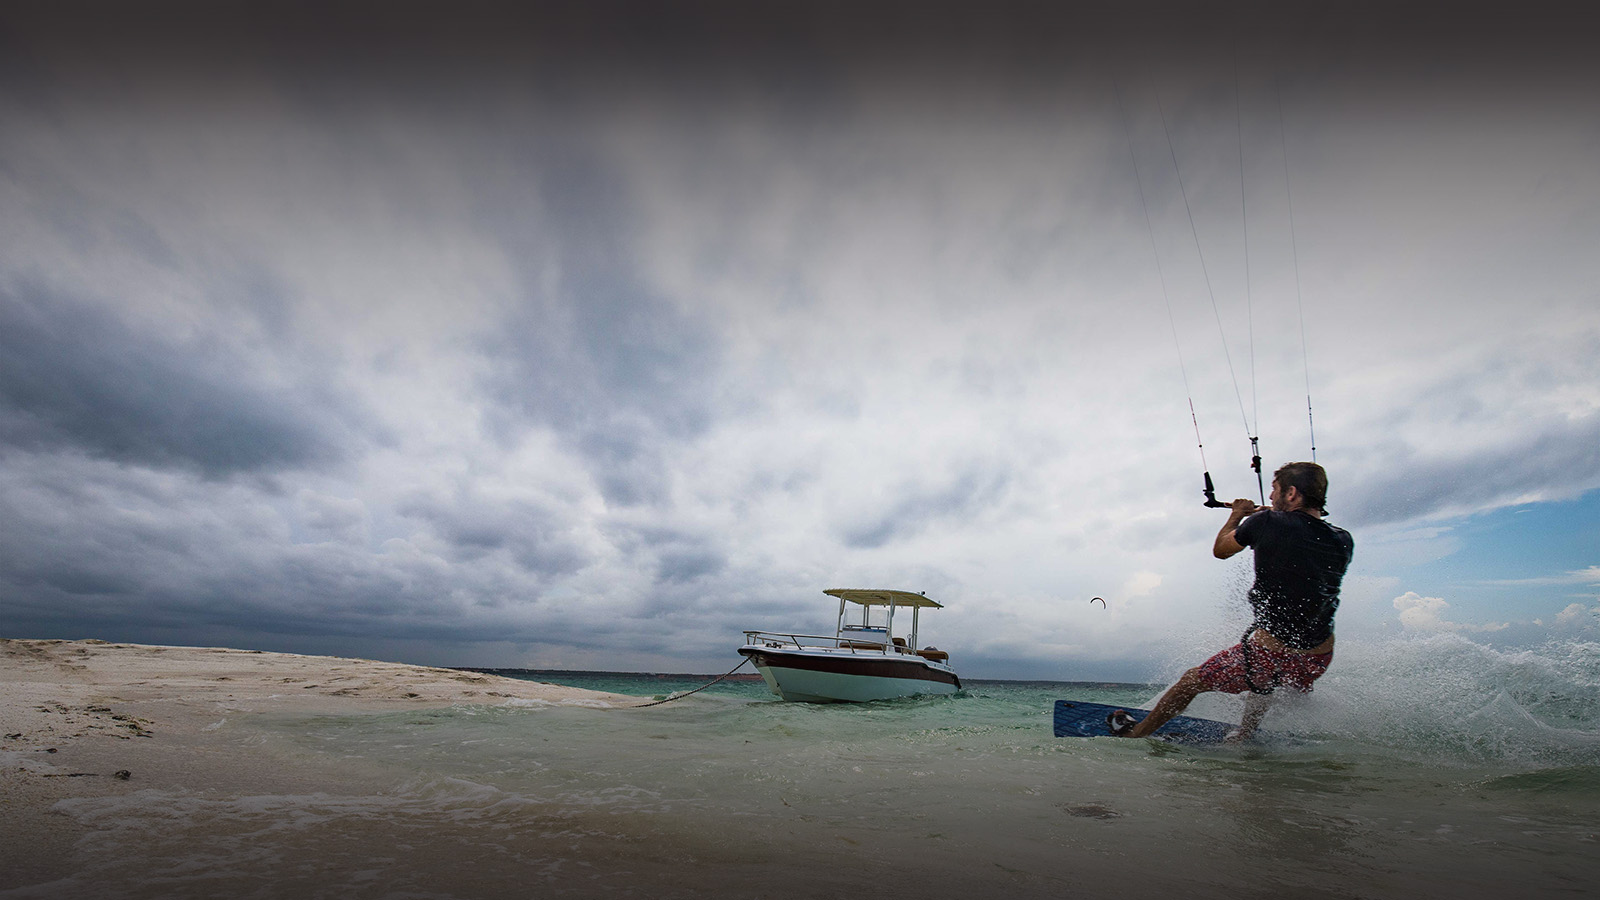 bahia-mar-mozambique-lodges-vilanculos-zambia-in-style-beach-house-luxury-destination-kite-surfing